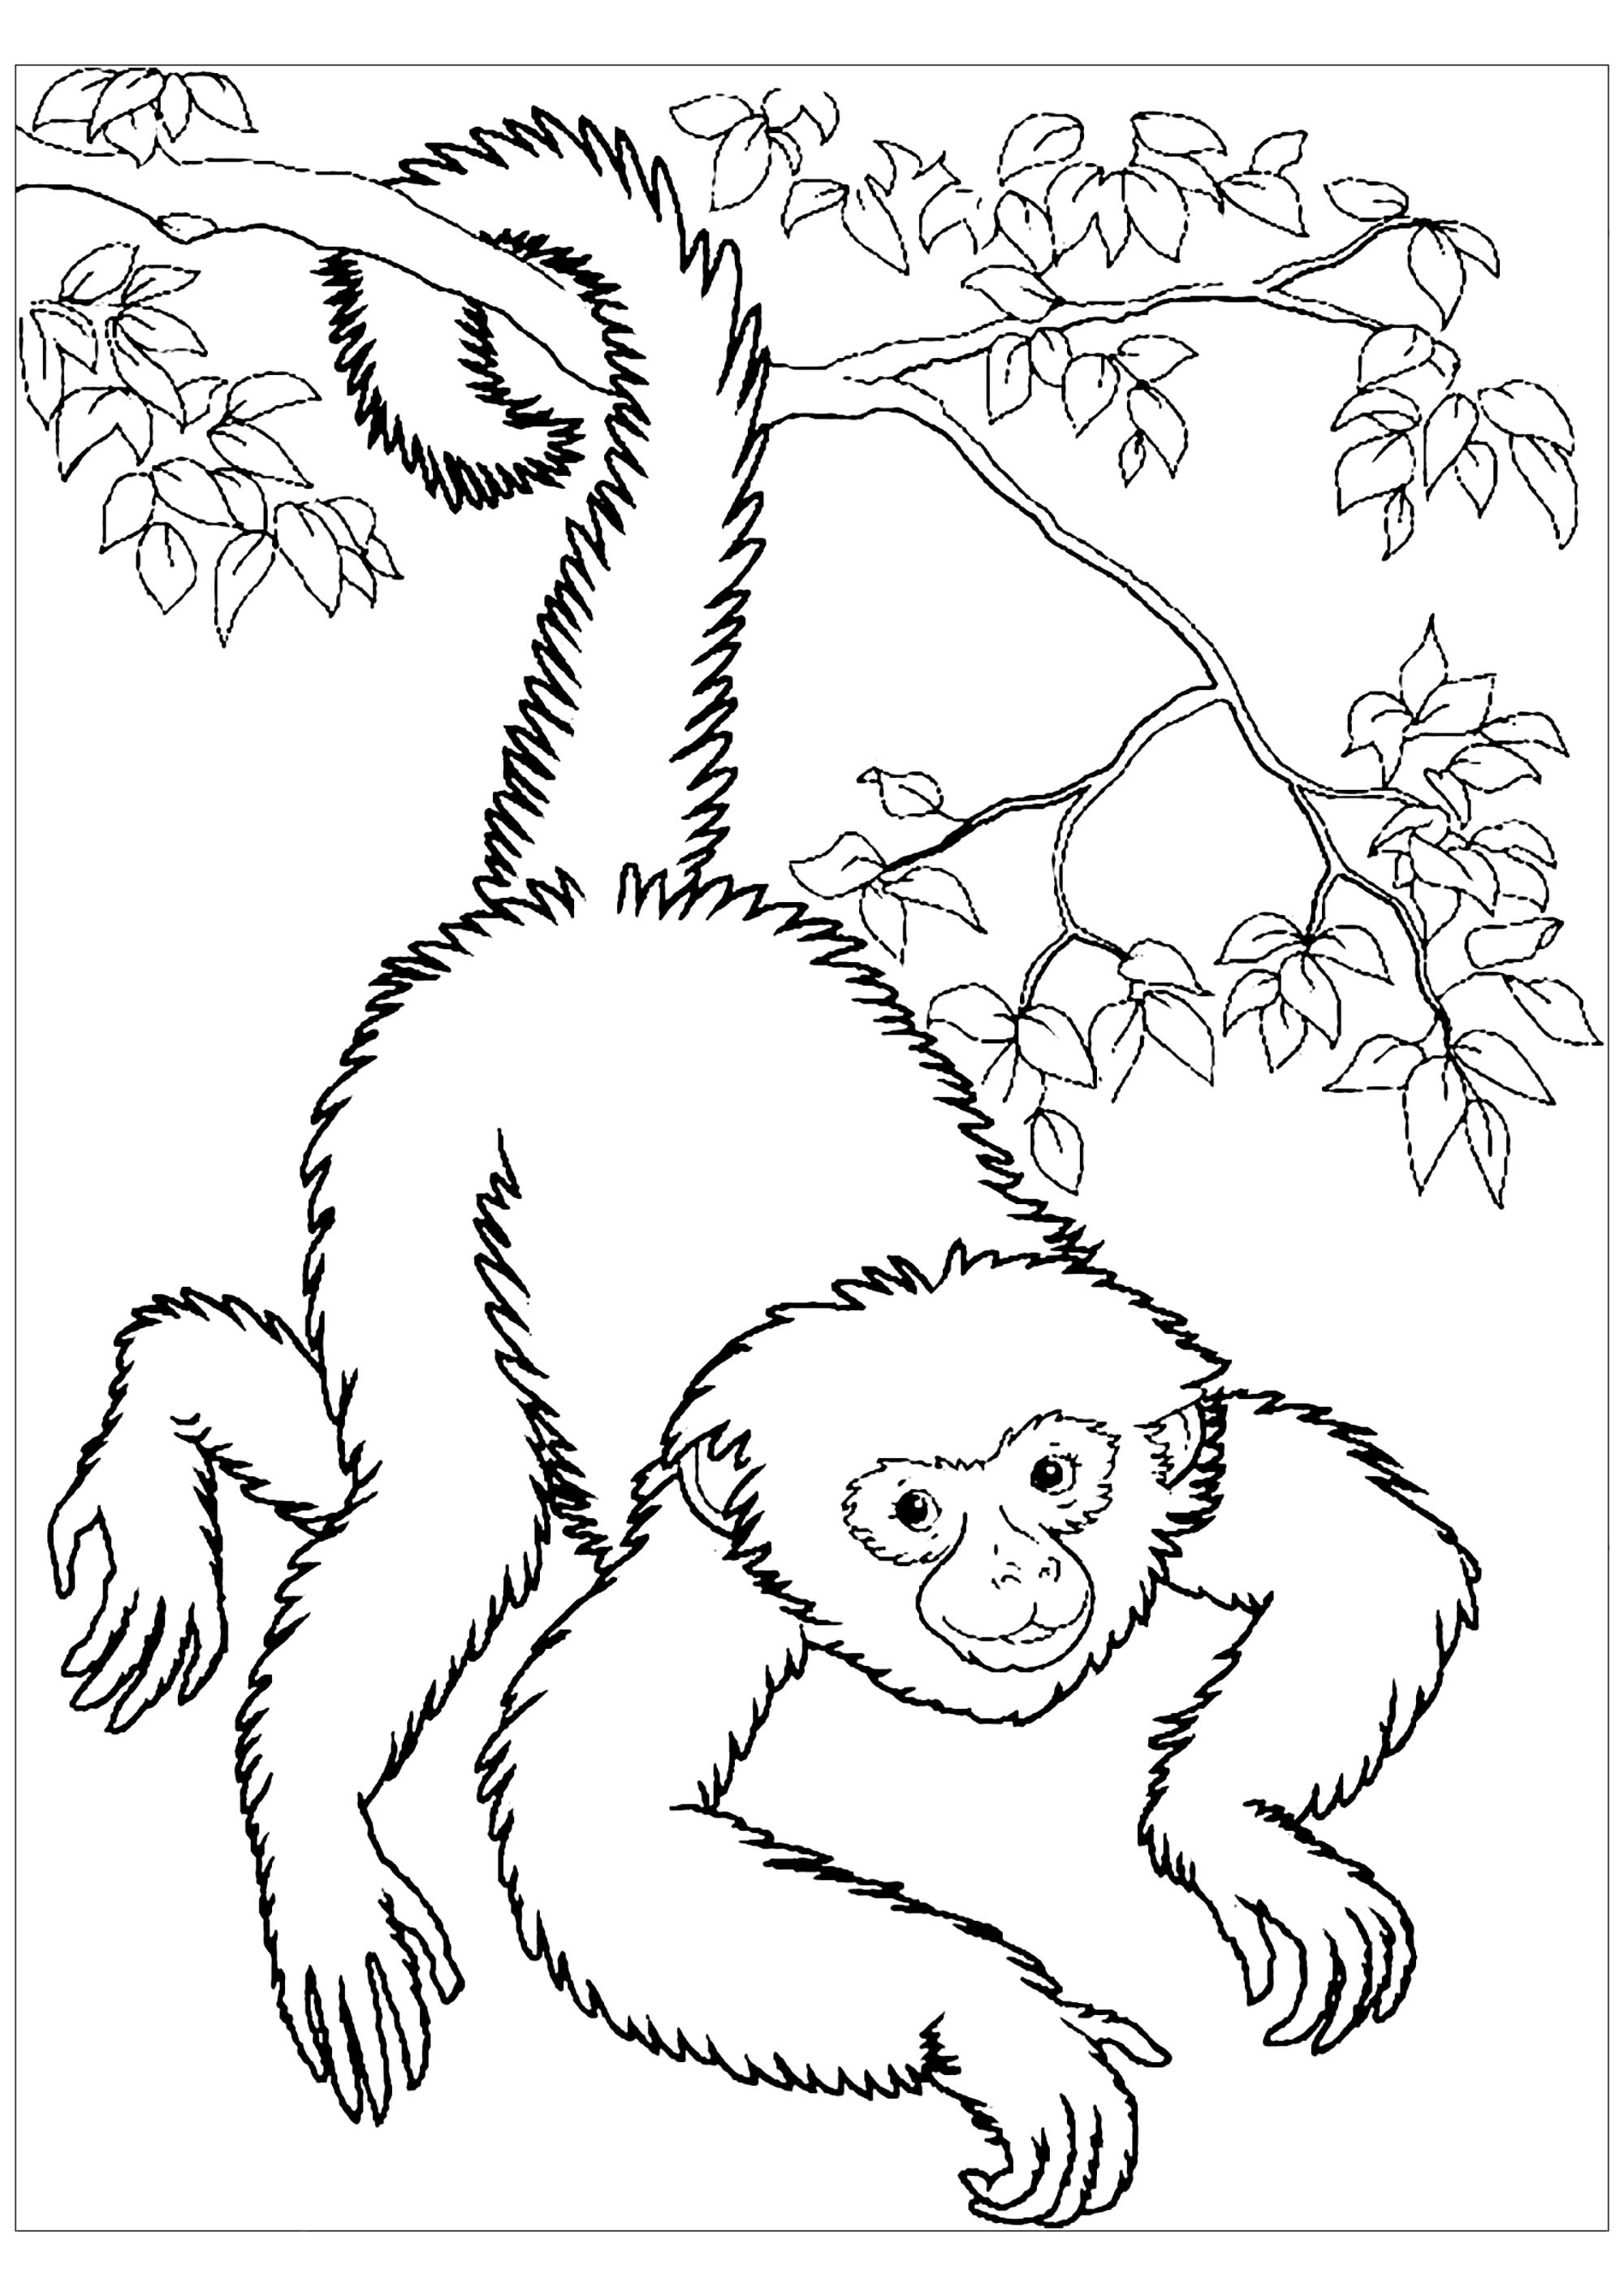 Monkeys free to color for kids - Monkeys Kids Coloring Pages